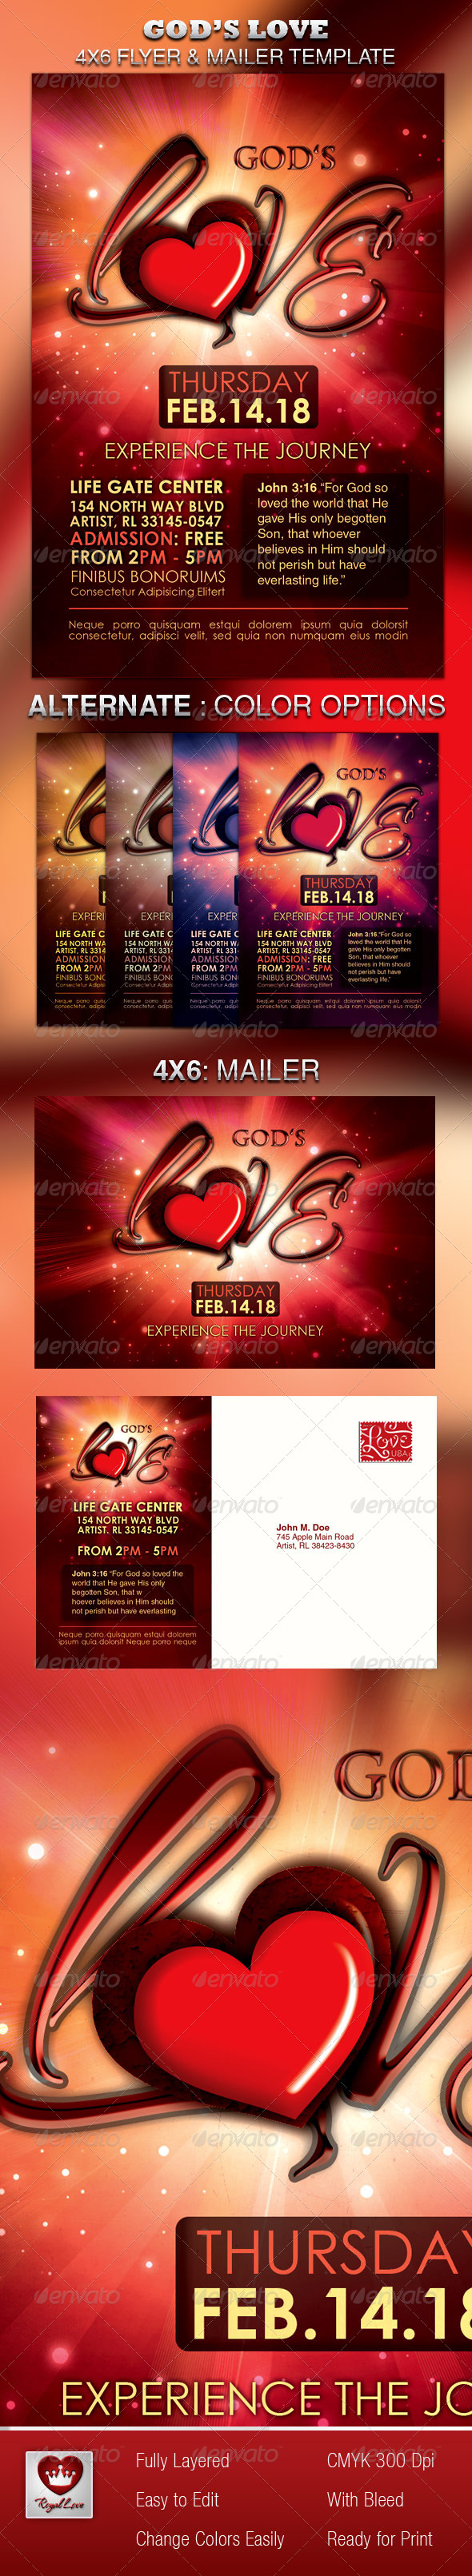 GraphicRiver God s Love Flyer & Mailer Template 4030632